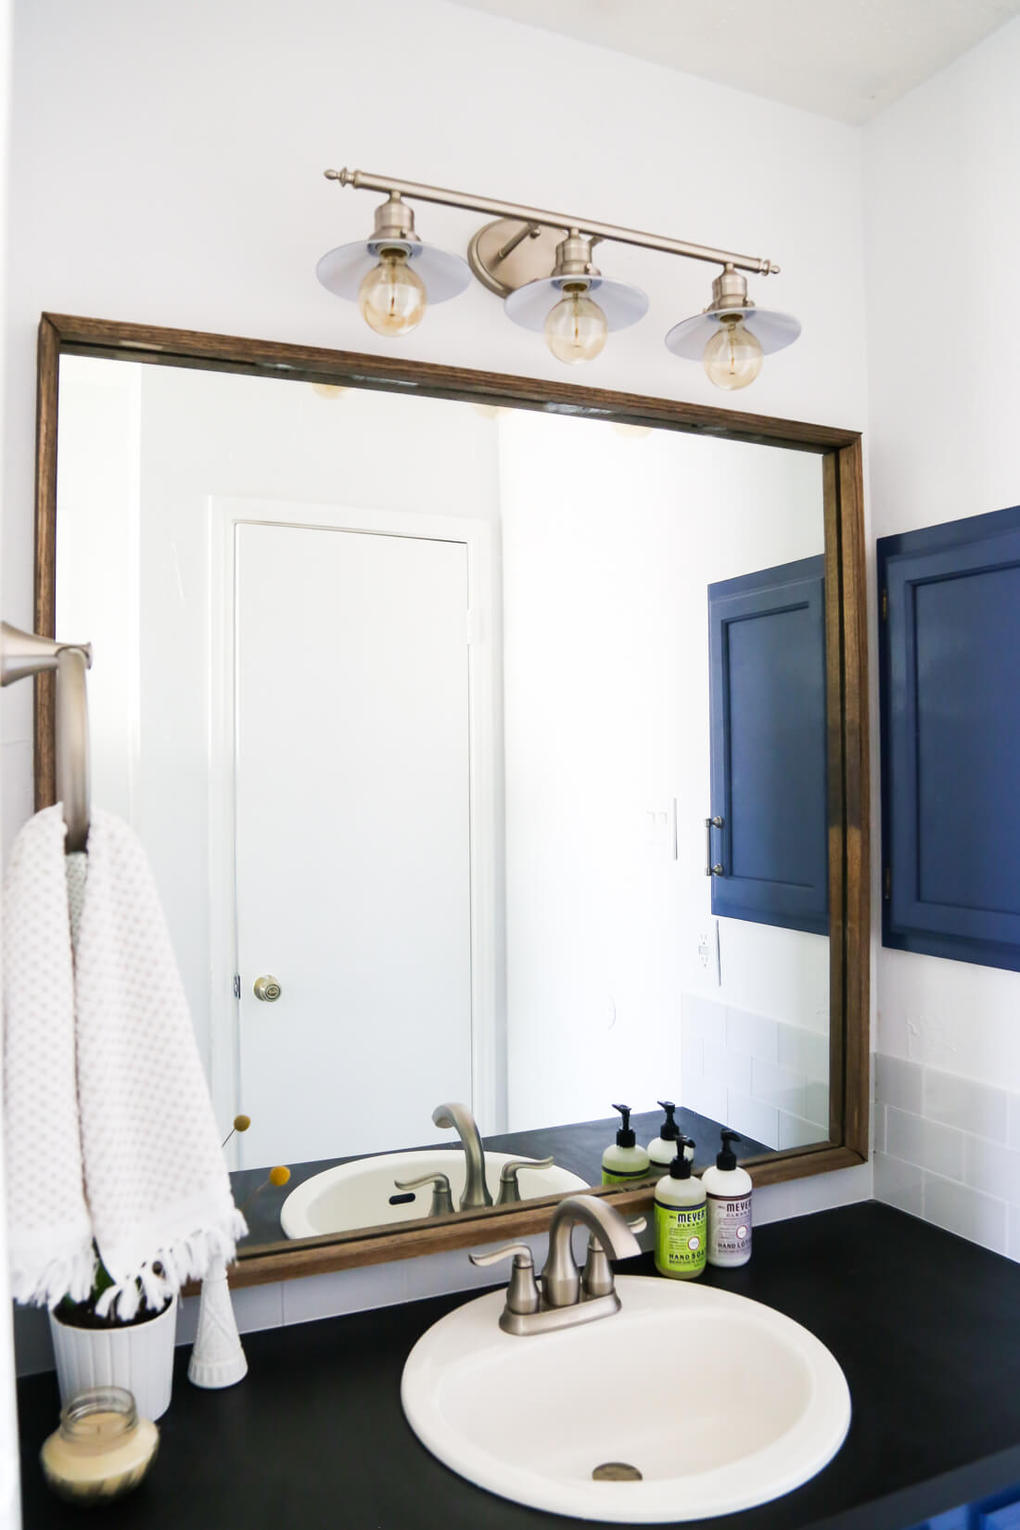 How to quickly and easily frame a bathroom mirror, to take your bathroom from builder-grade to completely custom!